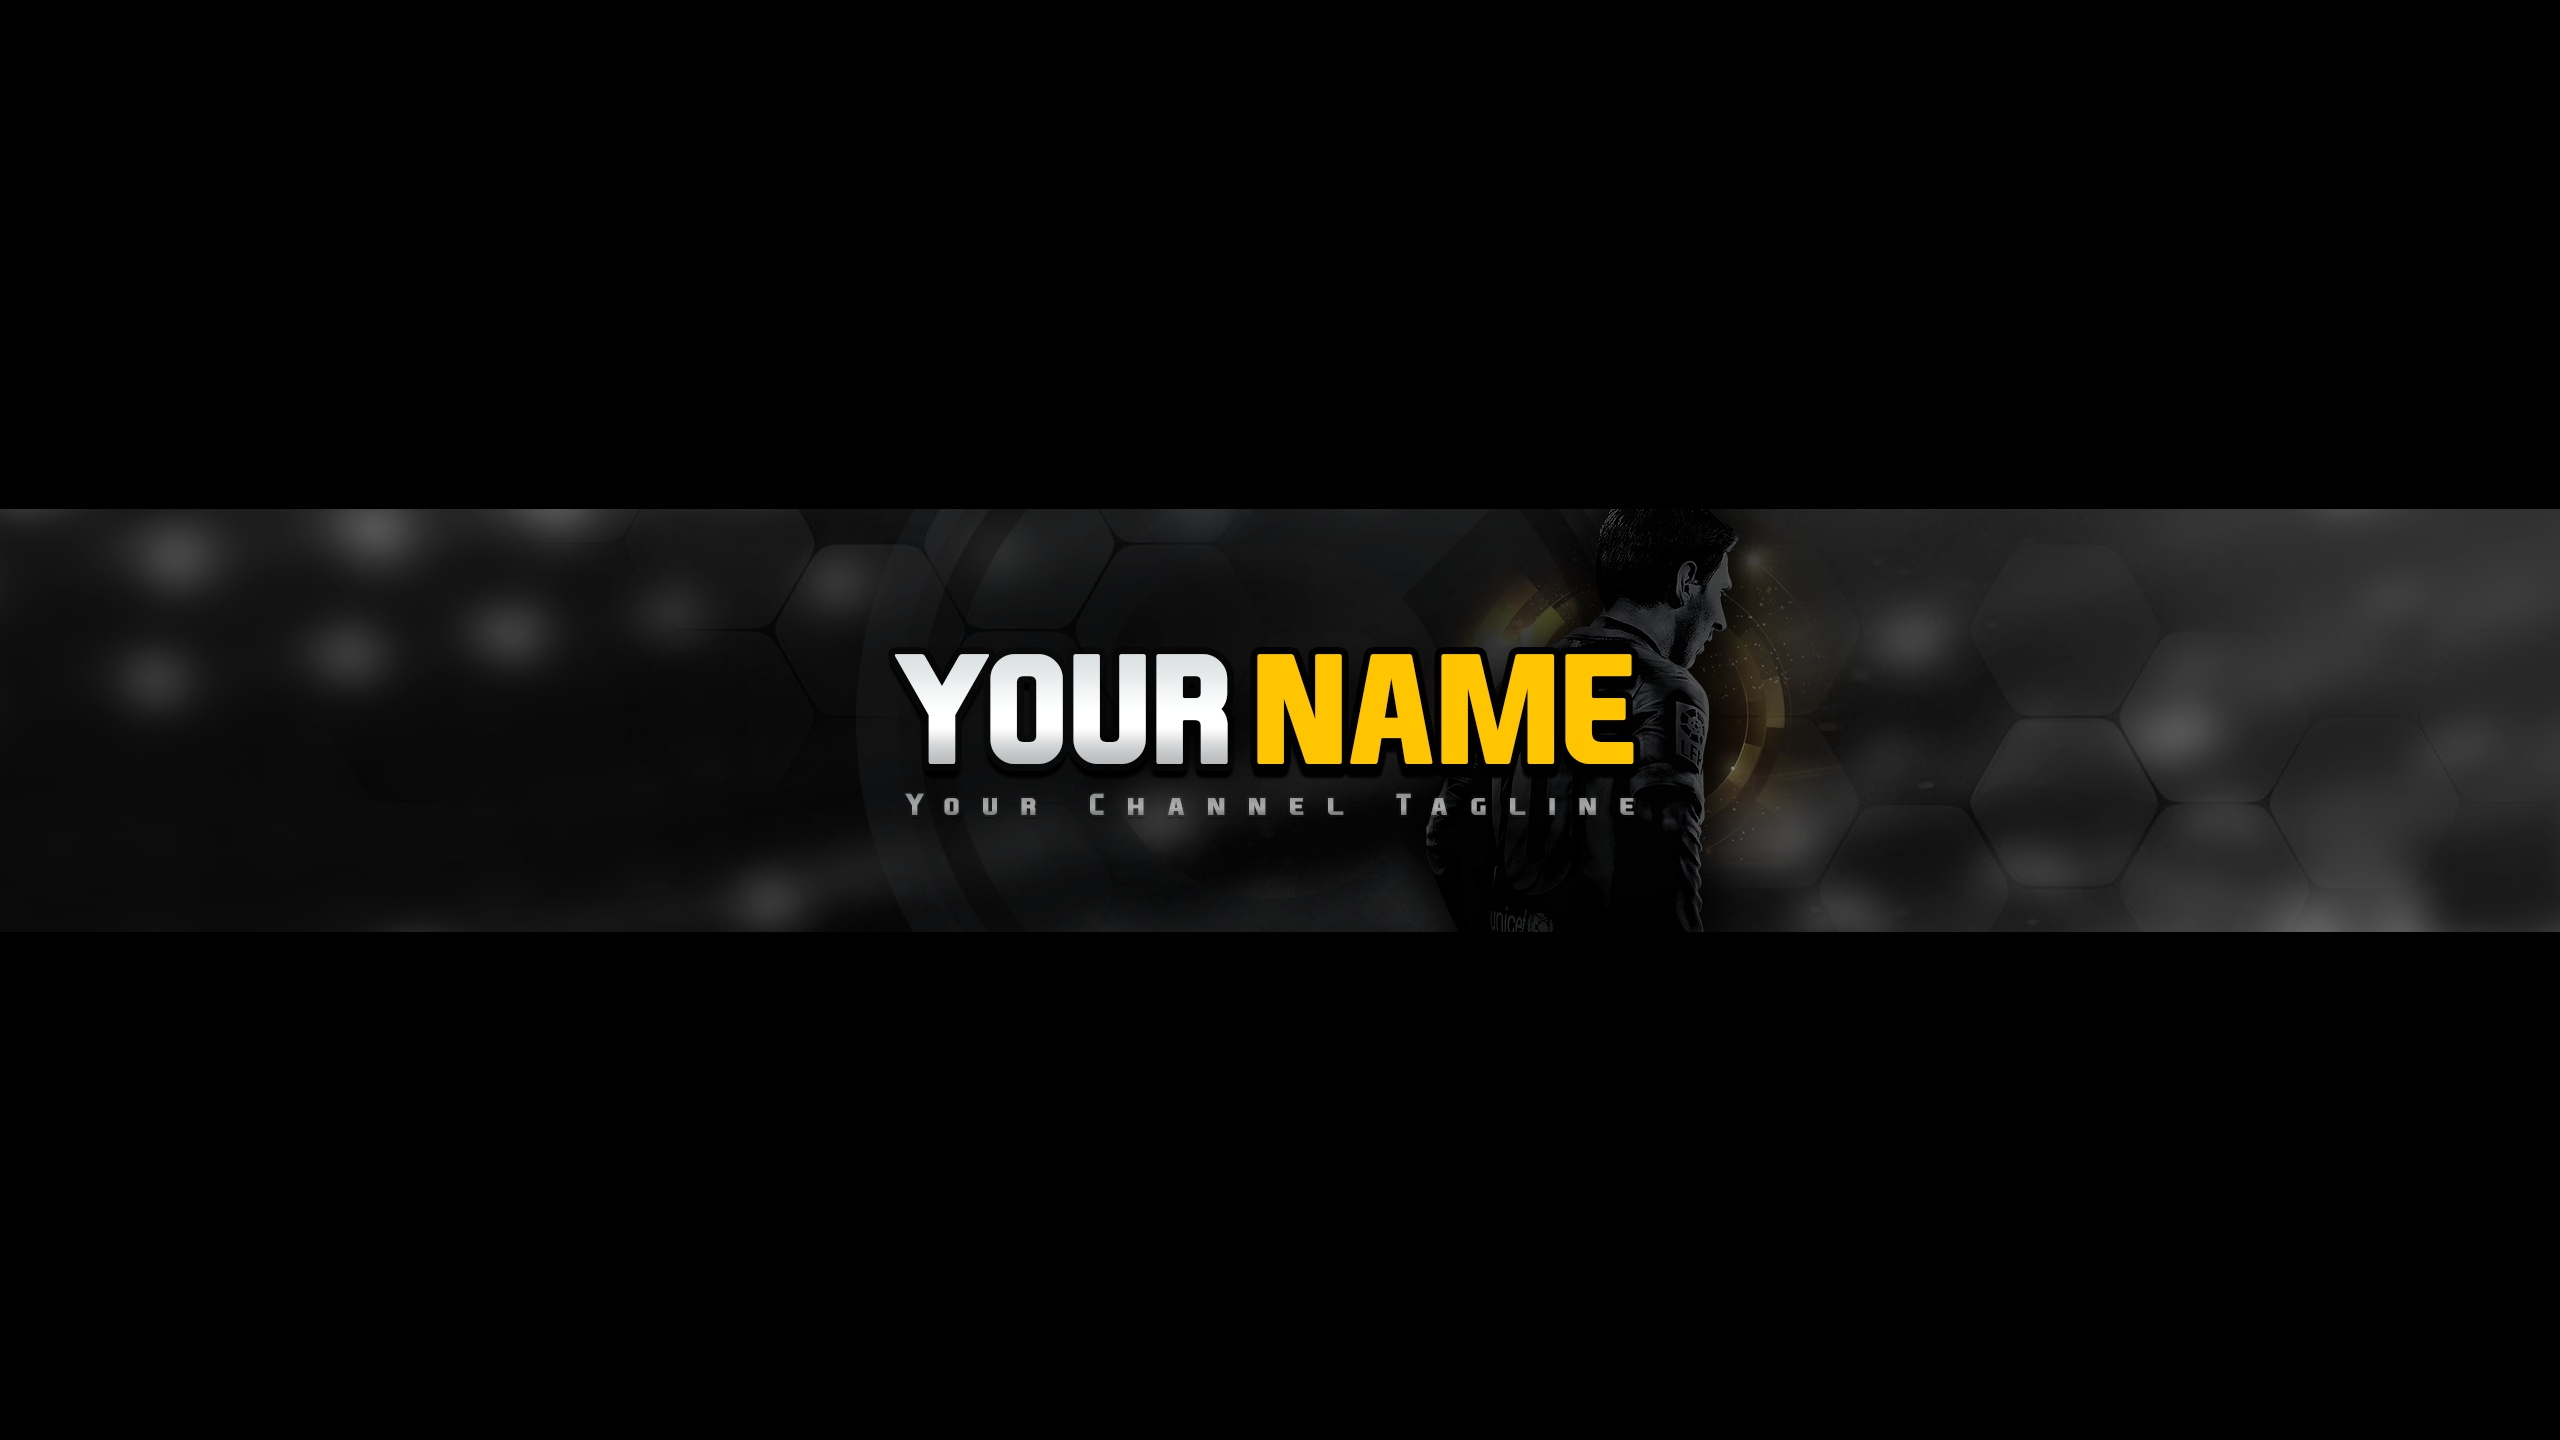 FIFA Style Channel Art Template For YouTube